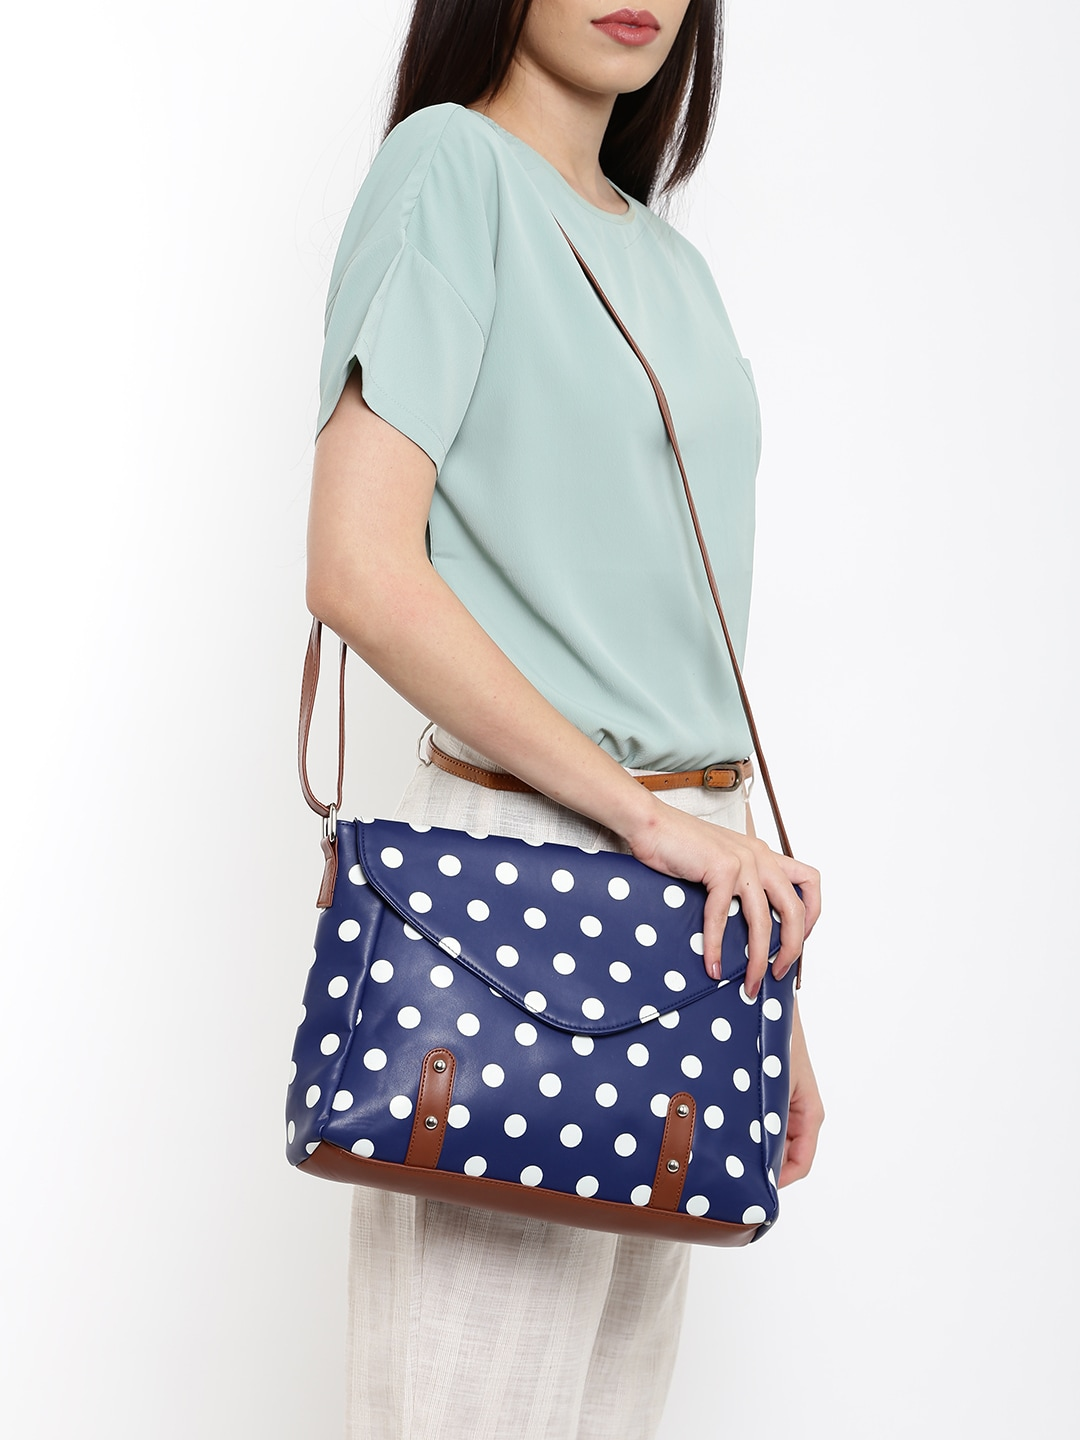 Ginger Sling Bag - Buy Ginger Sling Bag online in India